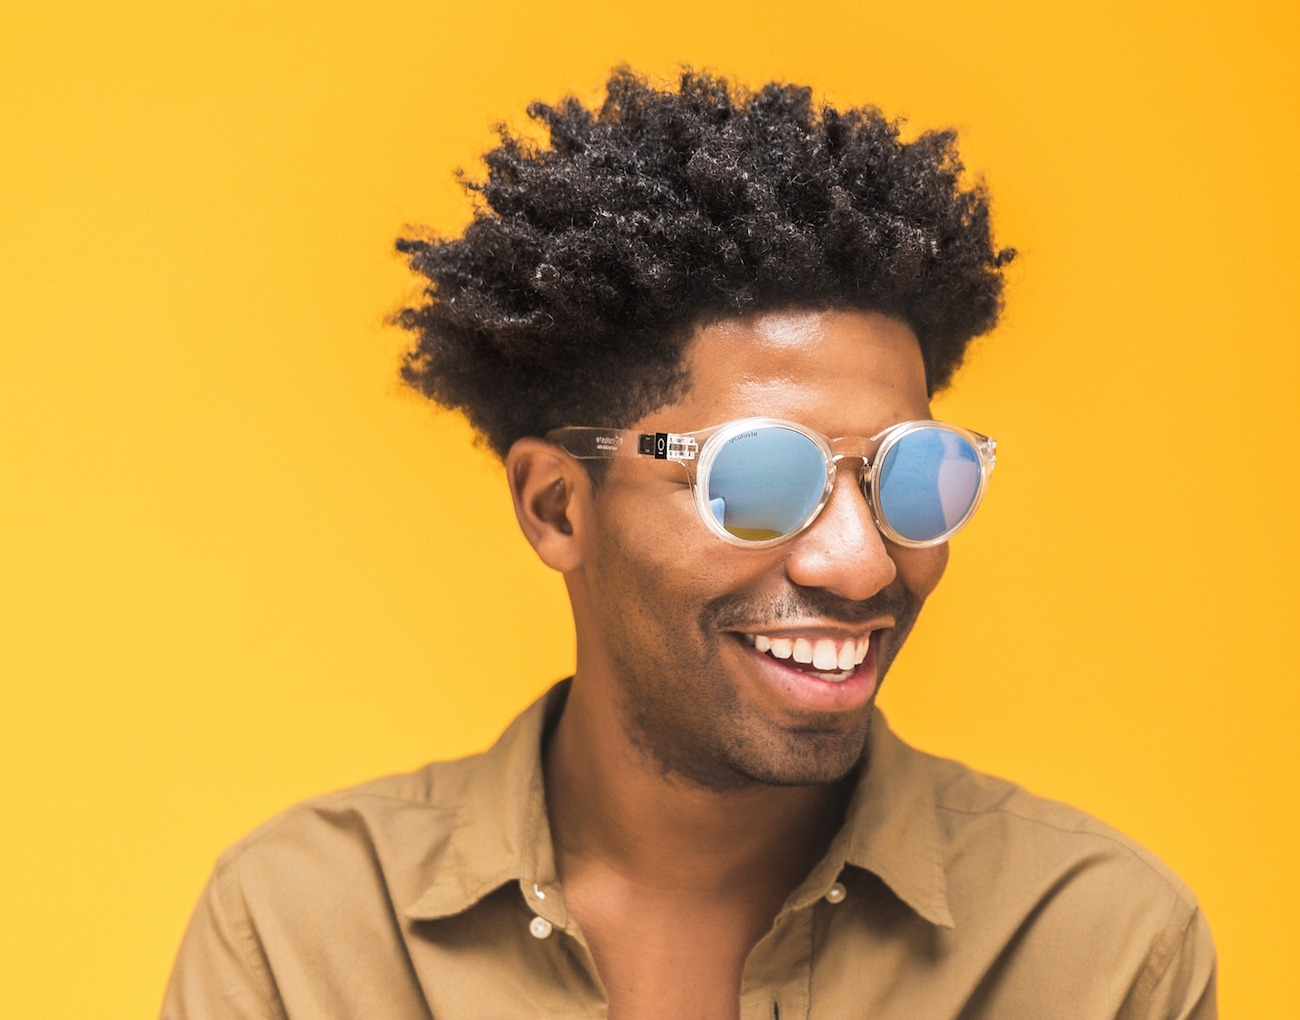 Oculuste – The First Fully Interchangeable Sunglasses